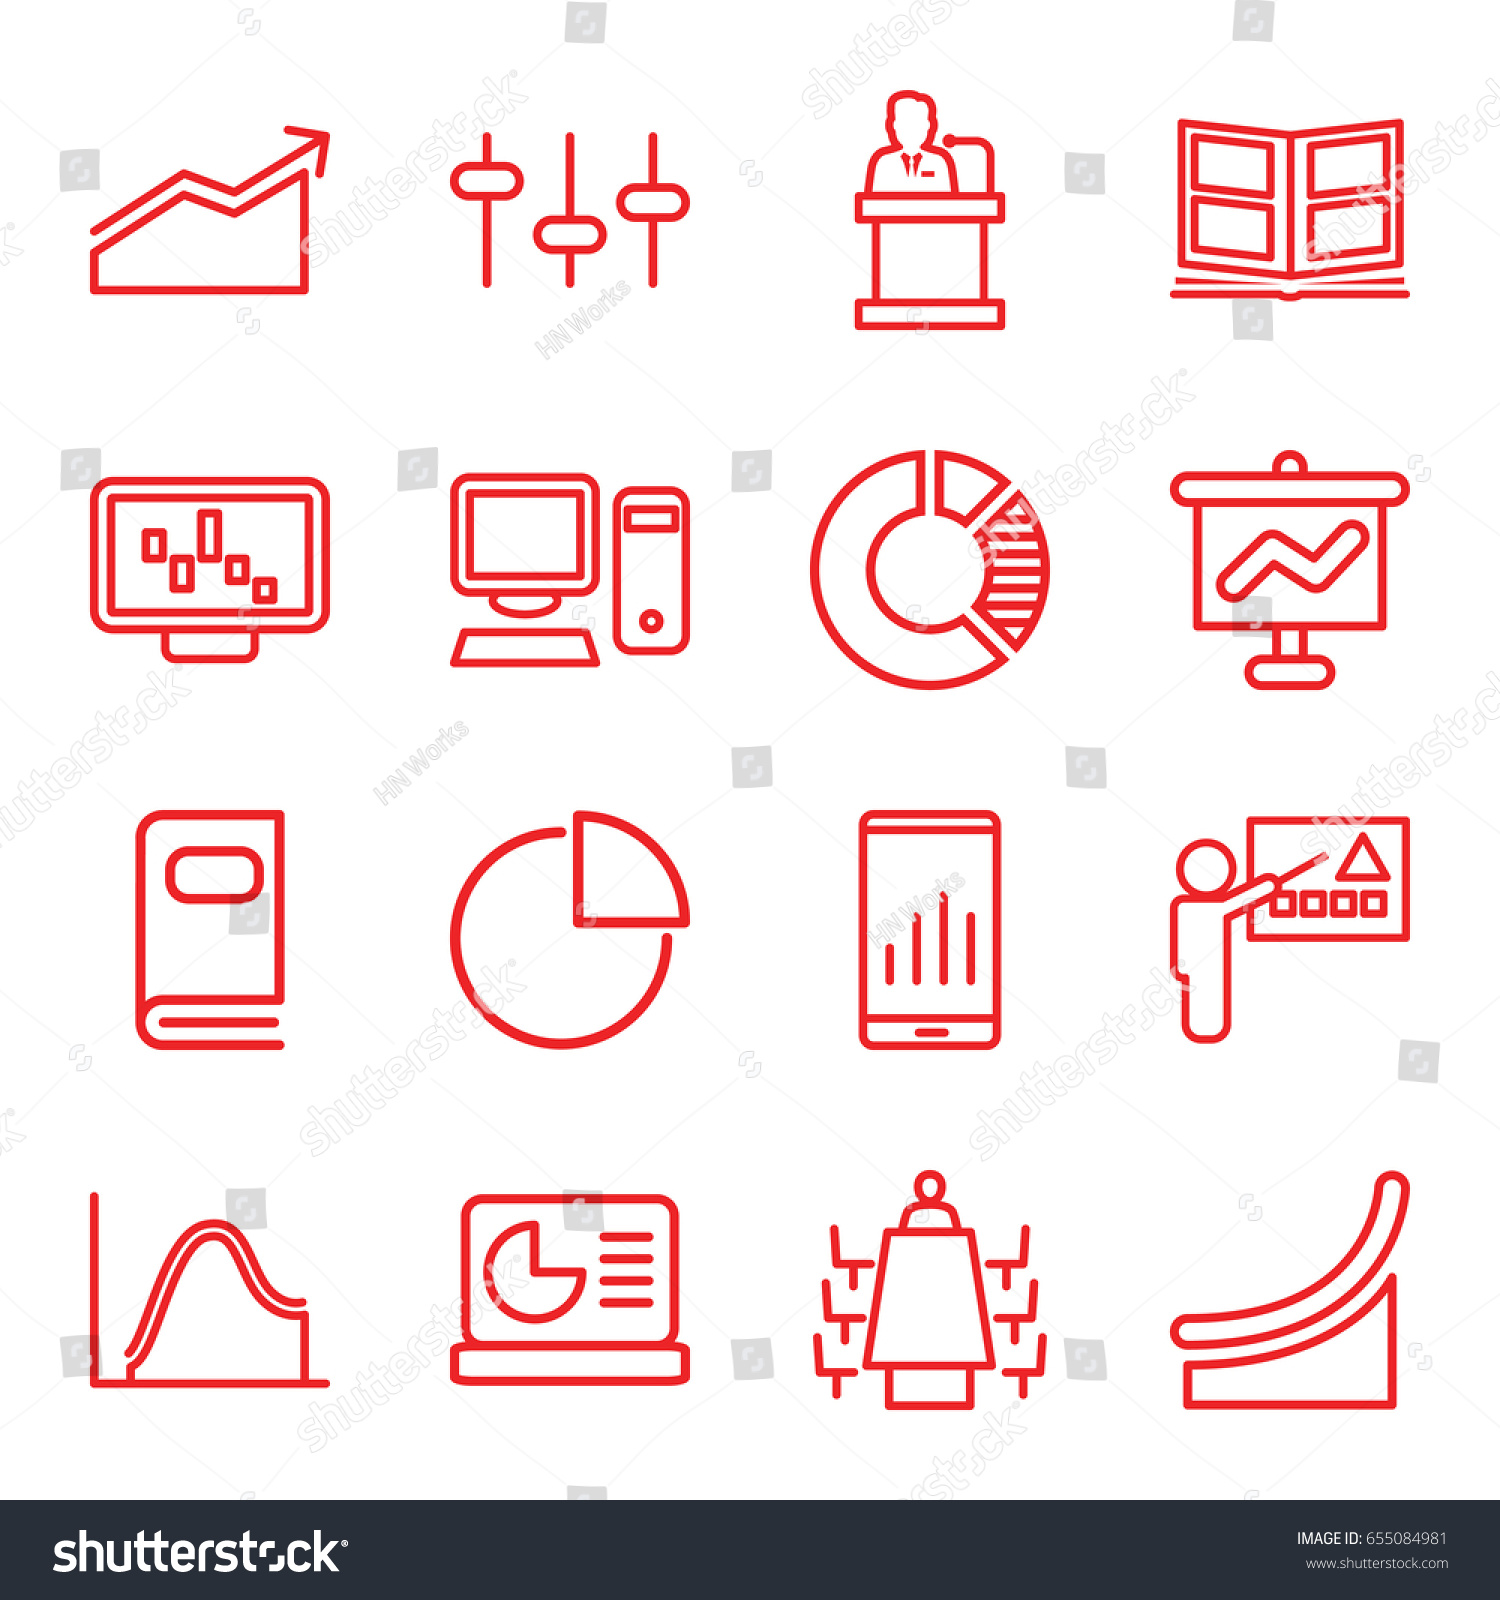 Presentation Icons Set 16 Stock Vector Royalty Schema Of Origami Mobile Crane 2 Outline Such As Equalizer Meeting